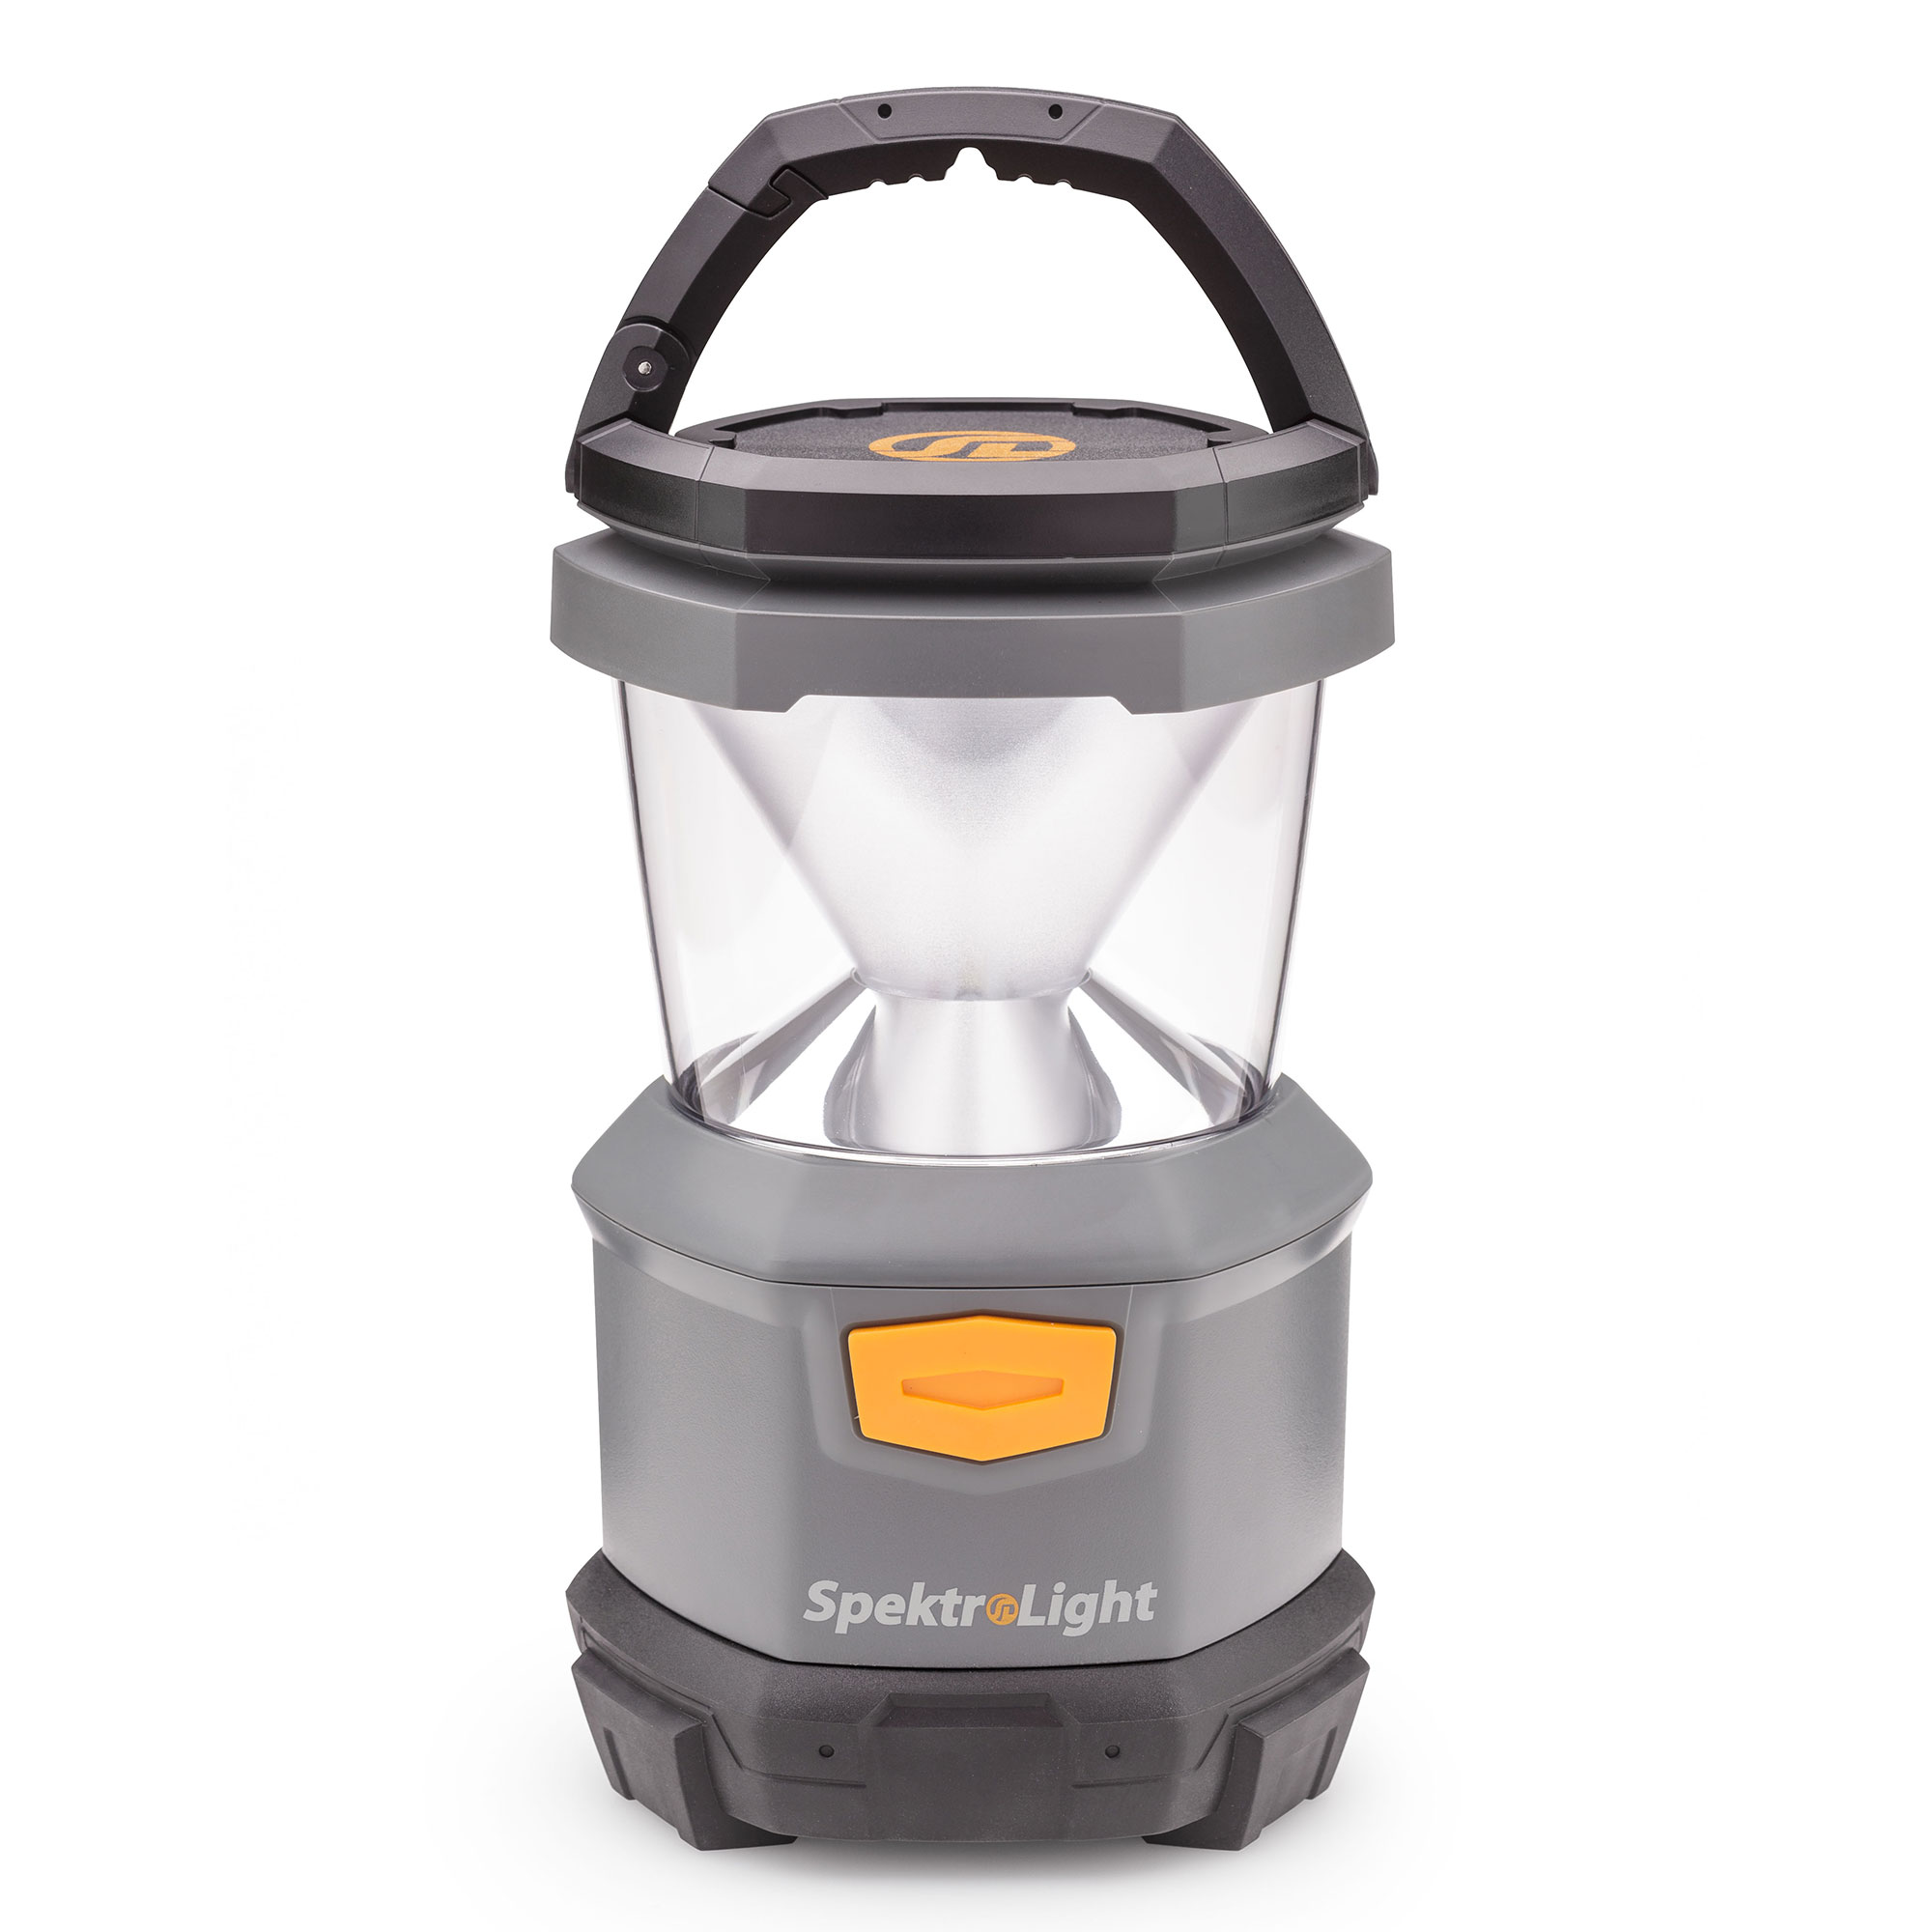 Spektrolight 400 Lumen Outdoor Camping Battery Powered Lantern with Nightlight